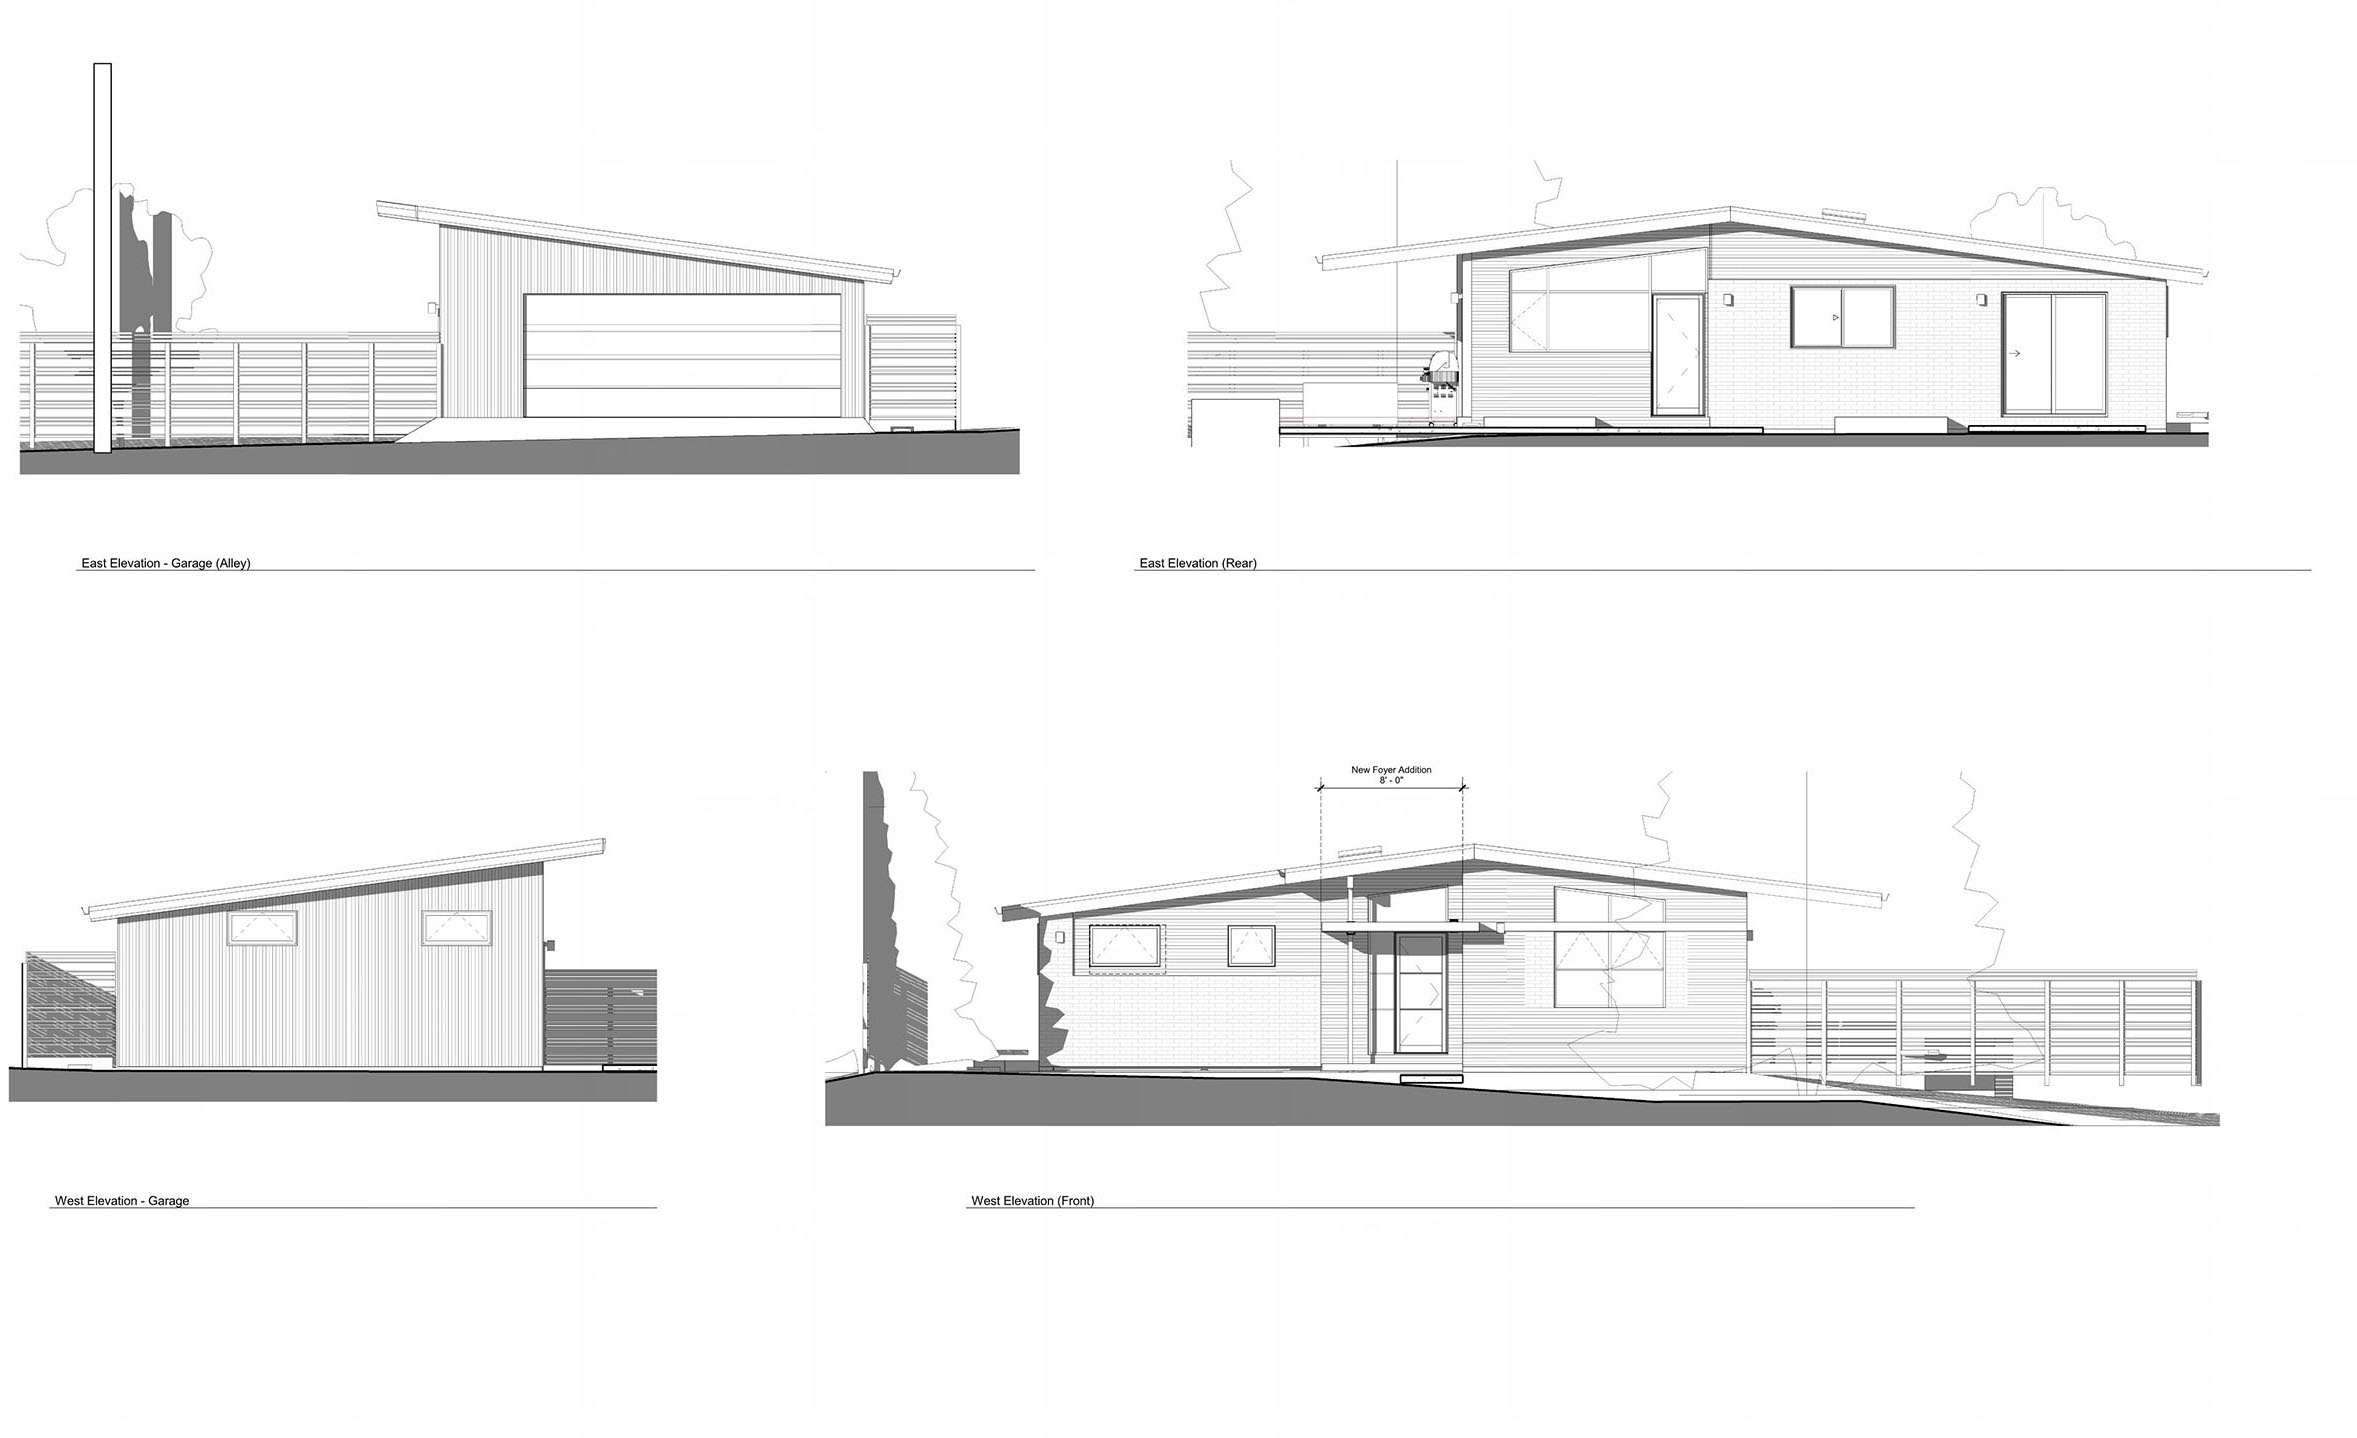 340 S Forest St - Cadence Exterior Elevations.jpg